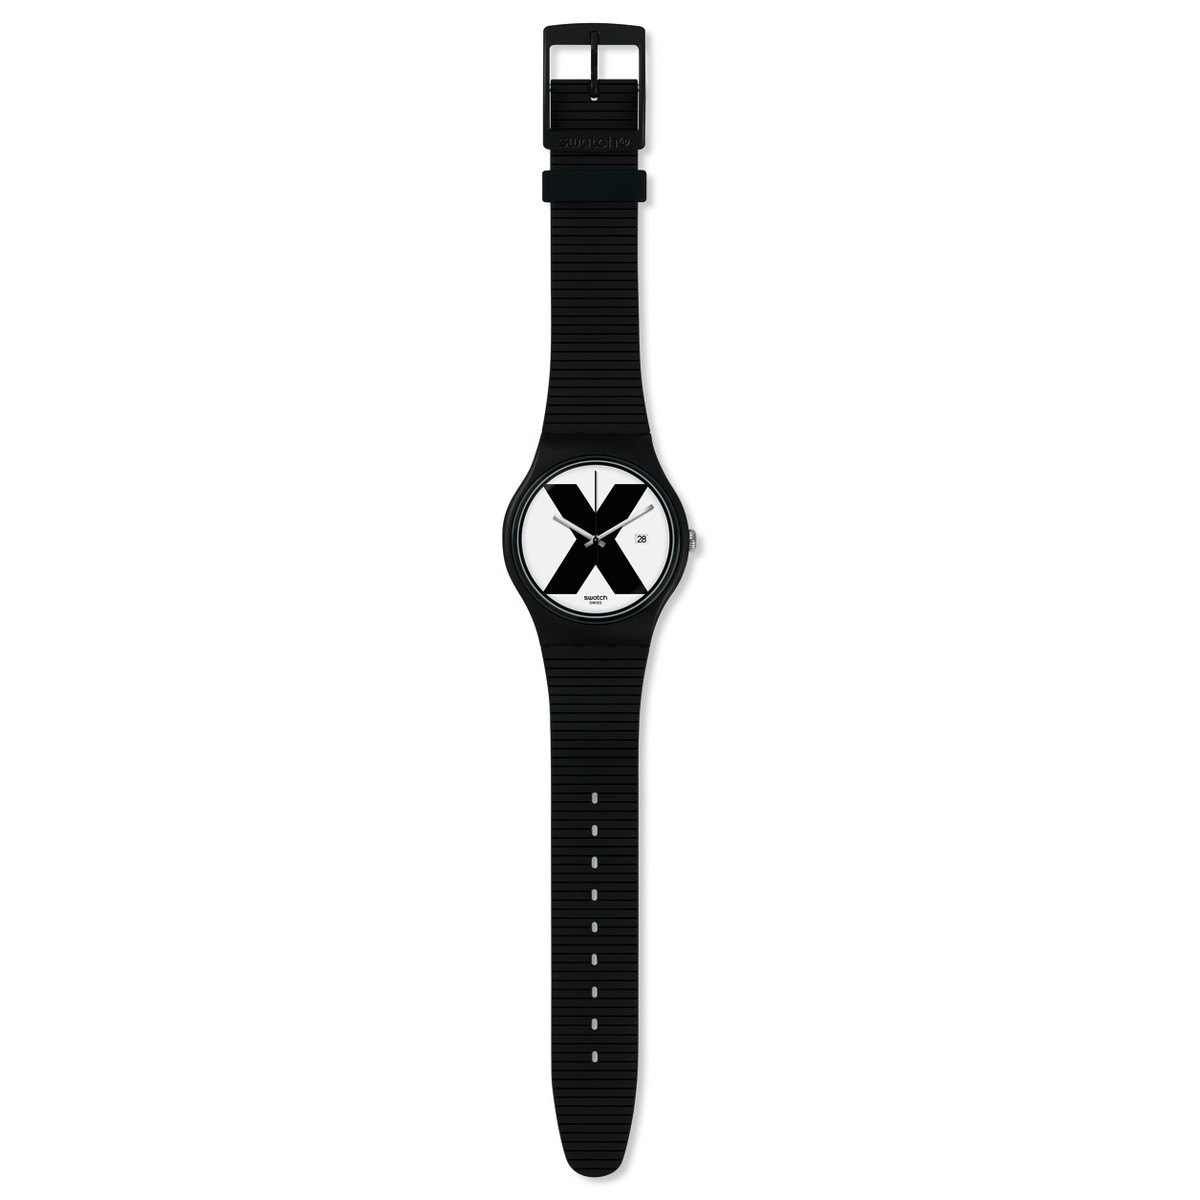 Montre Swatch Xx rated black mixte plastique noir - vue VD1